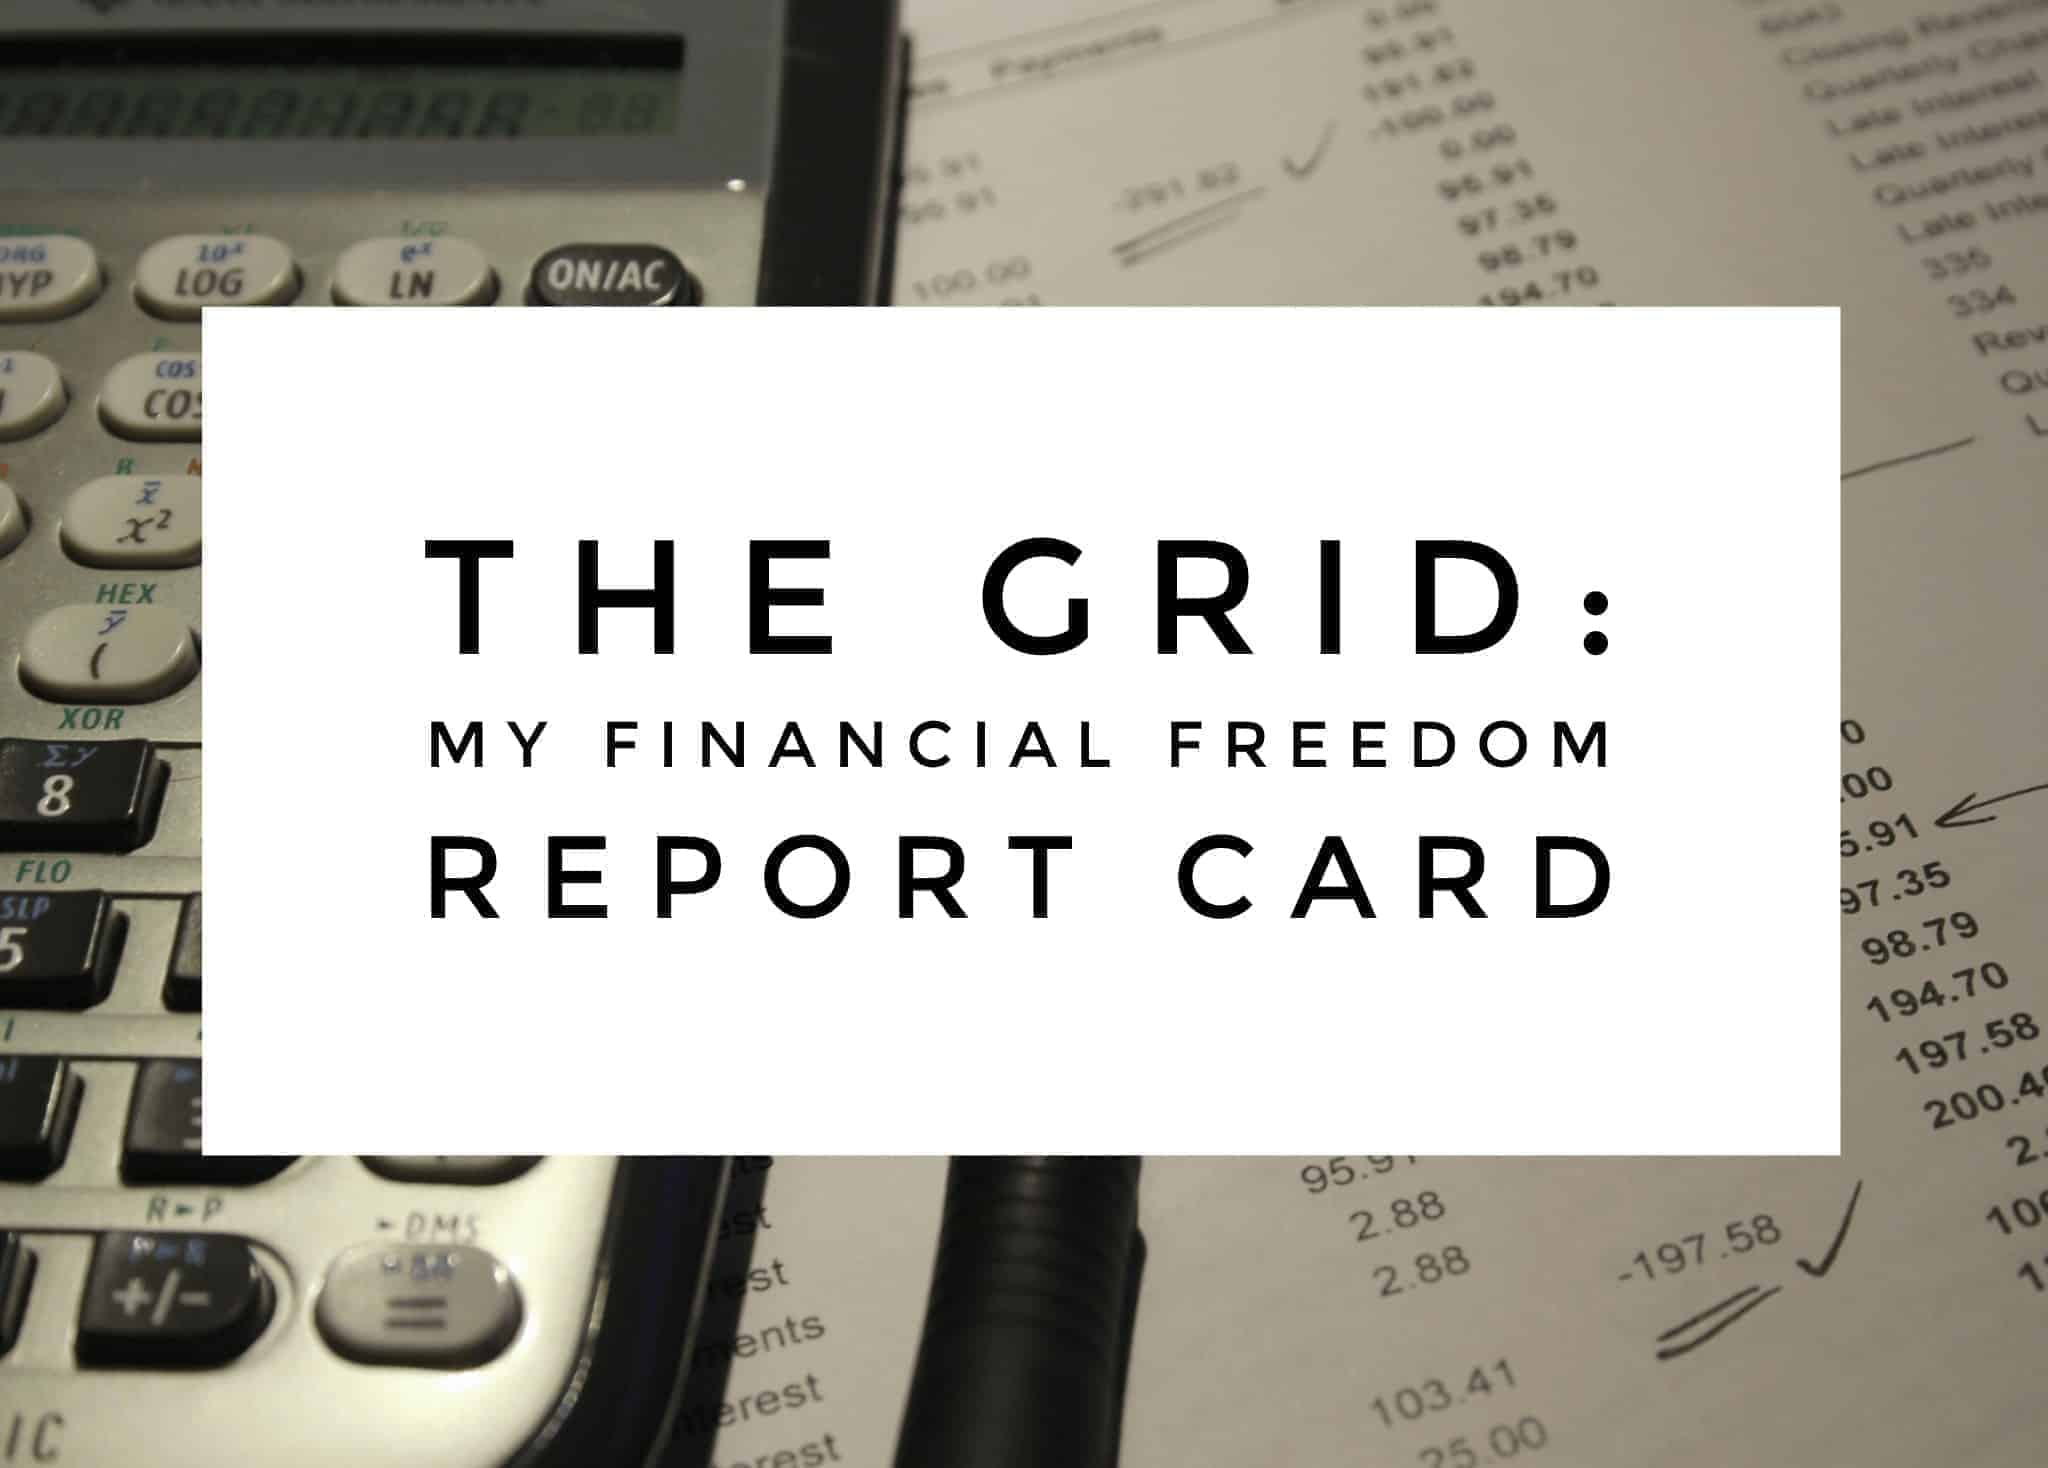 The grid Financial report card